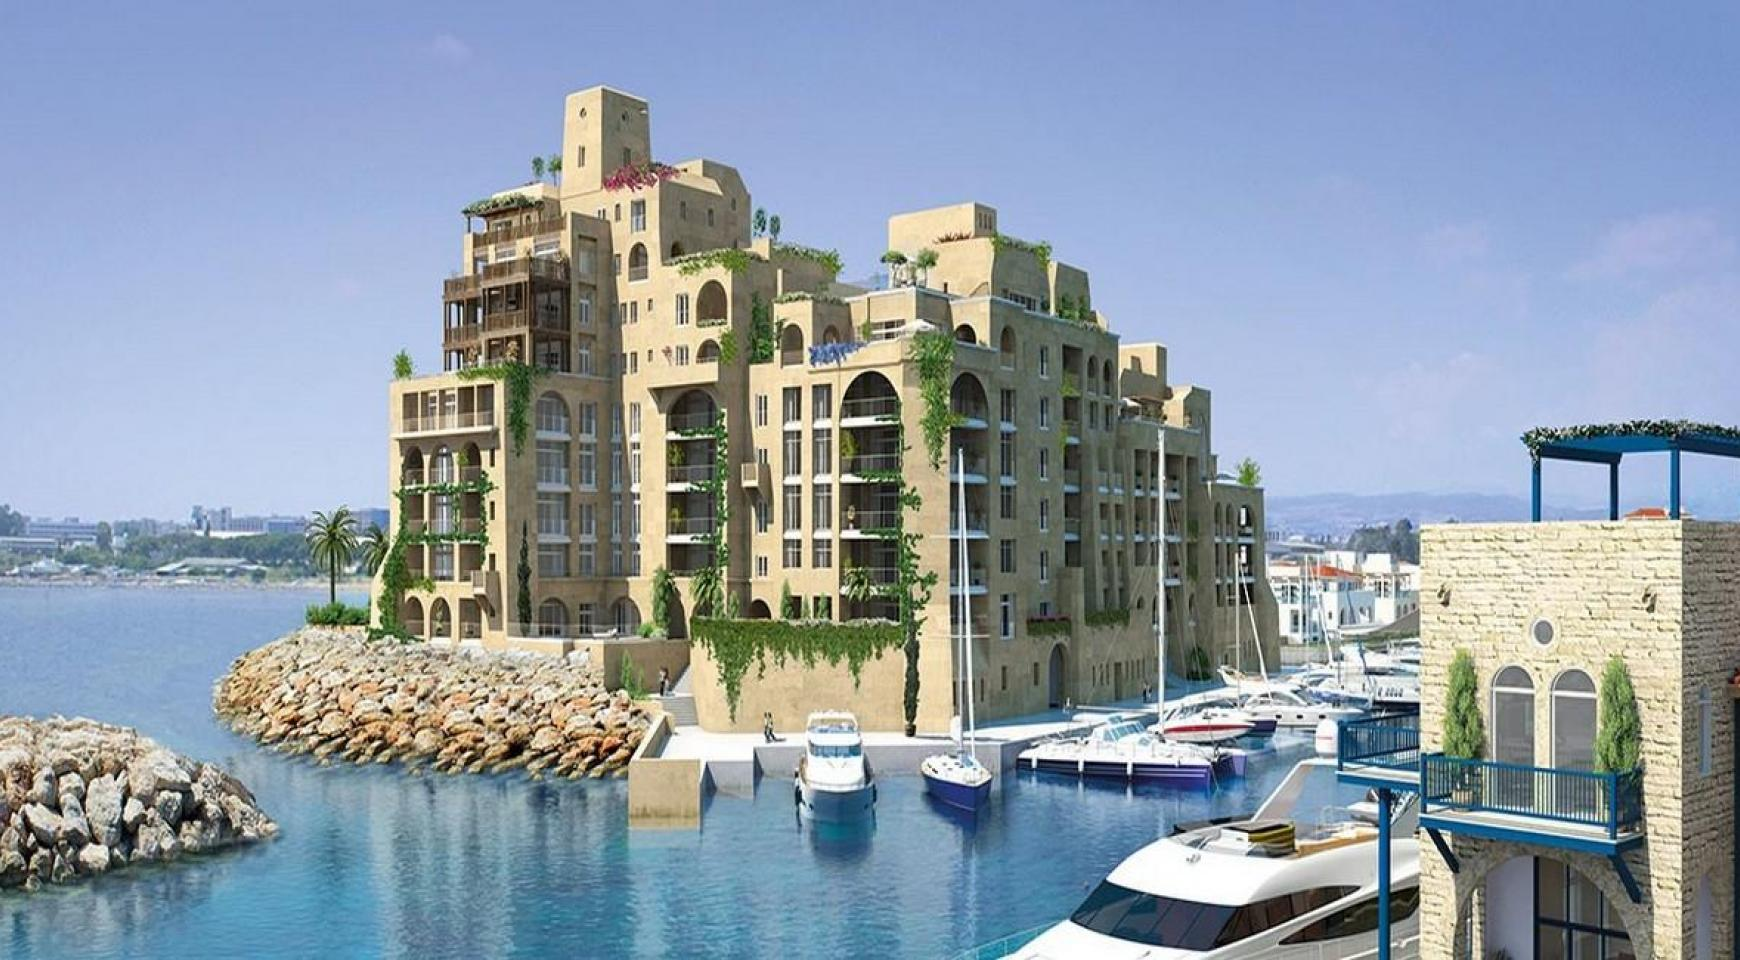 2 Bedroom Apartment in an Exclusive Project on the Sea - 1